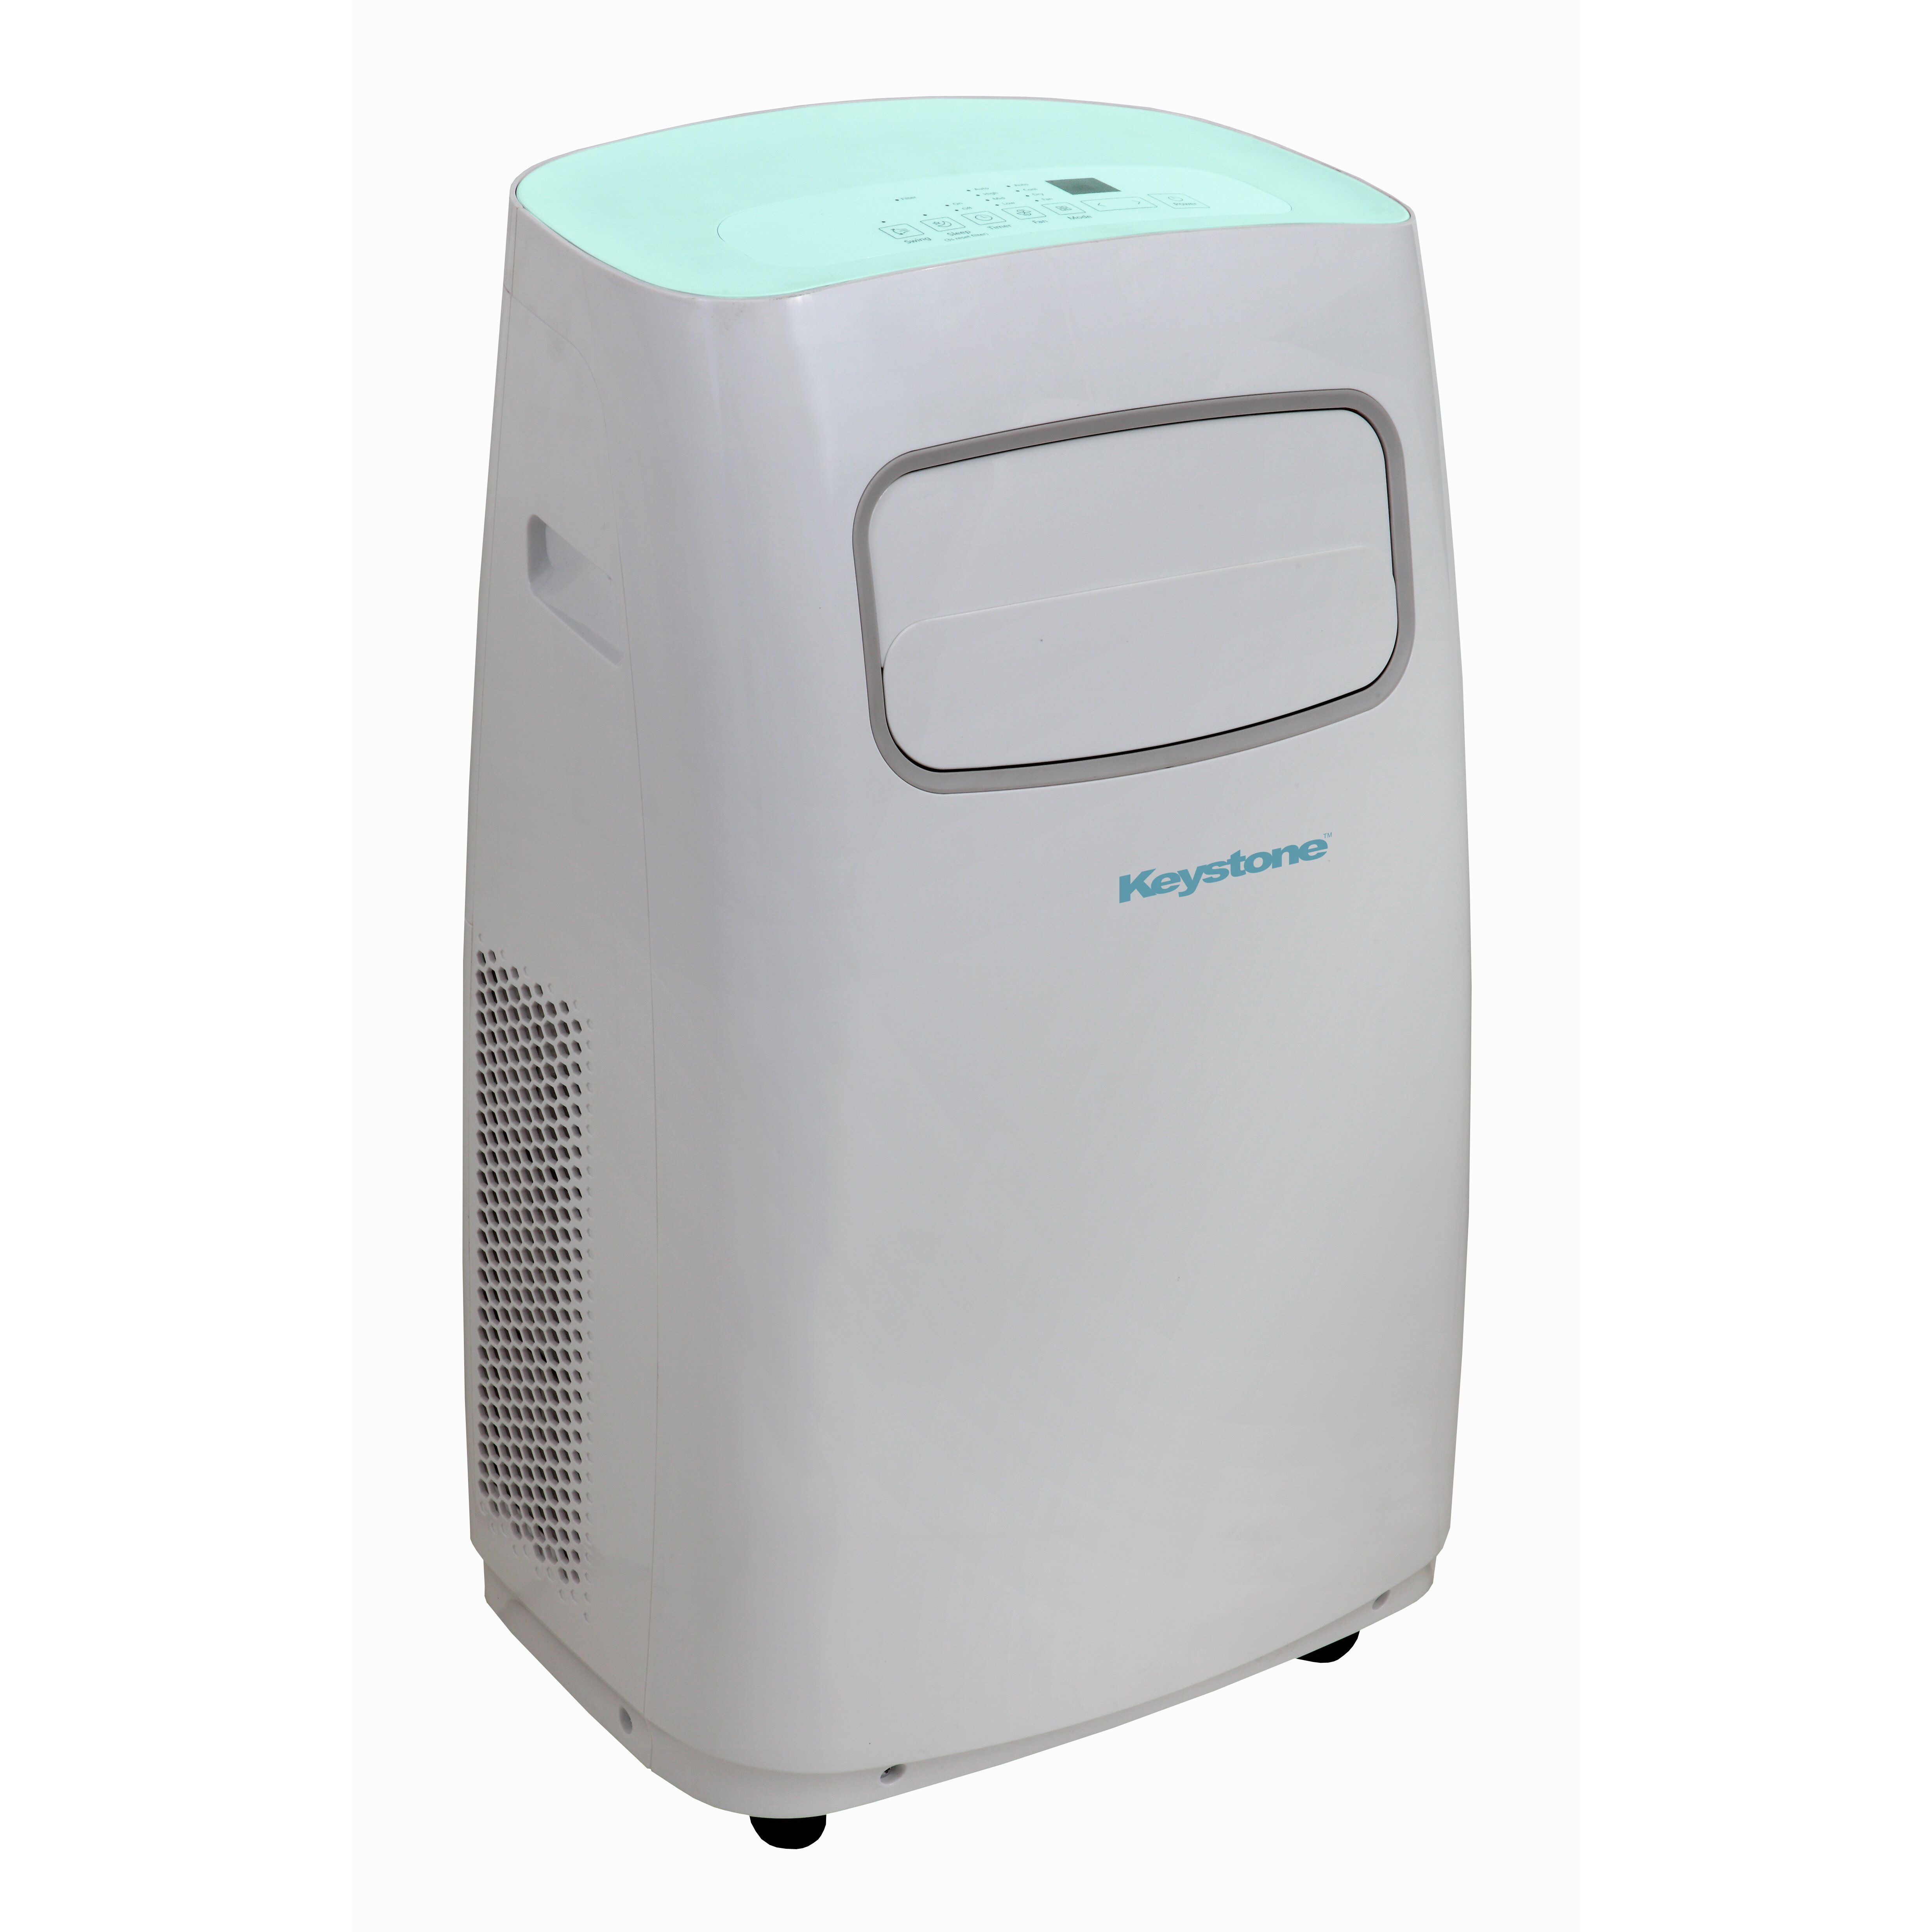 Keystone 14 000 BTU Portable Air Conditioner with Remote & Reviews  #556D76